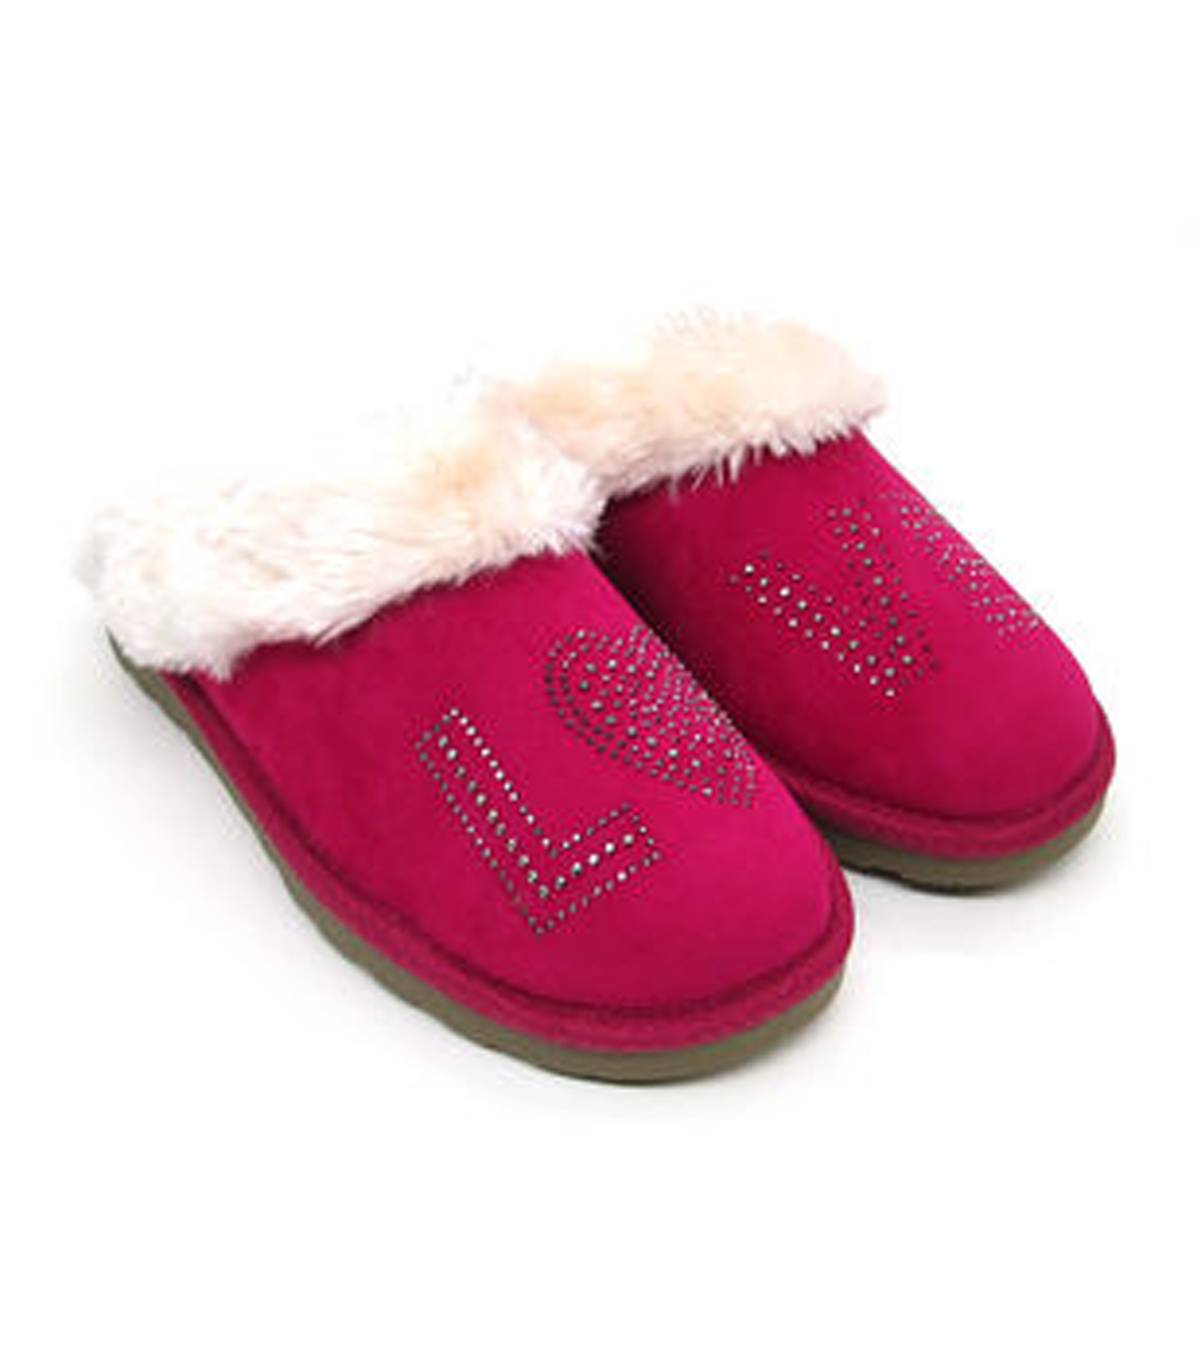 The 5 & Twine™ Slippers Crystal Scuff-Pink